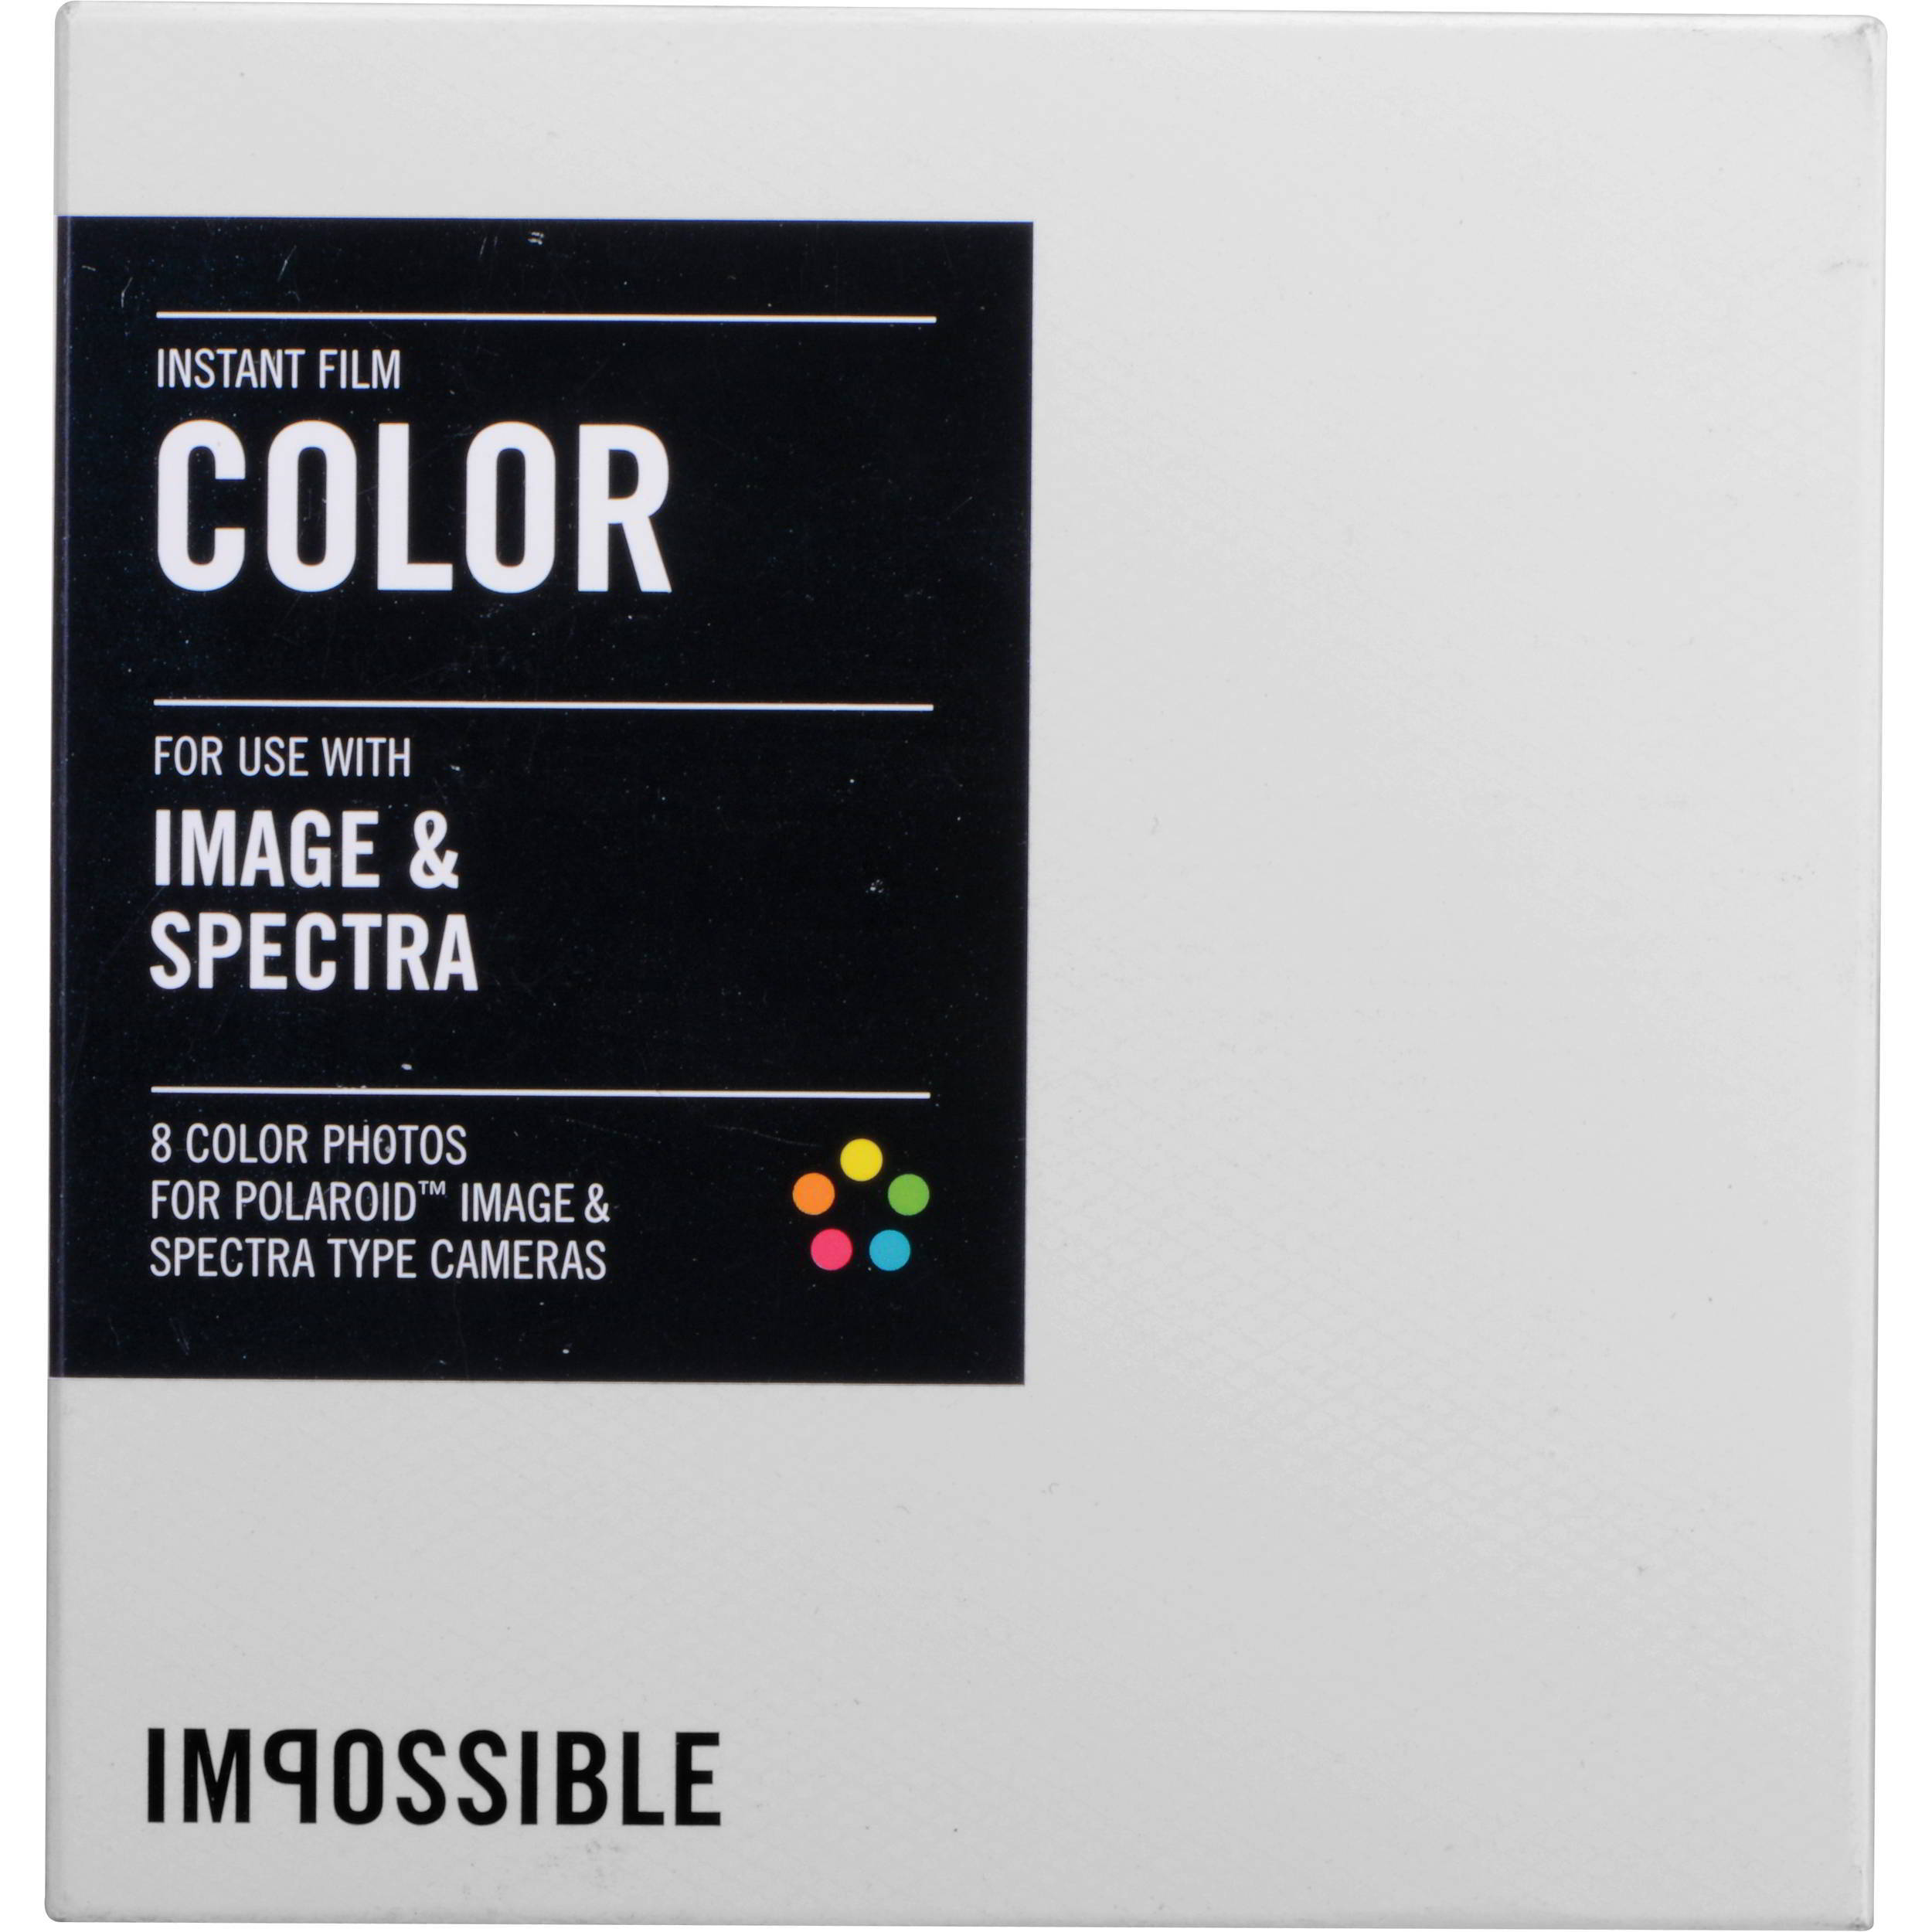 INSTANT COLOR FILM FOR IMAGES/SPECTRA CAMERAS